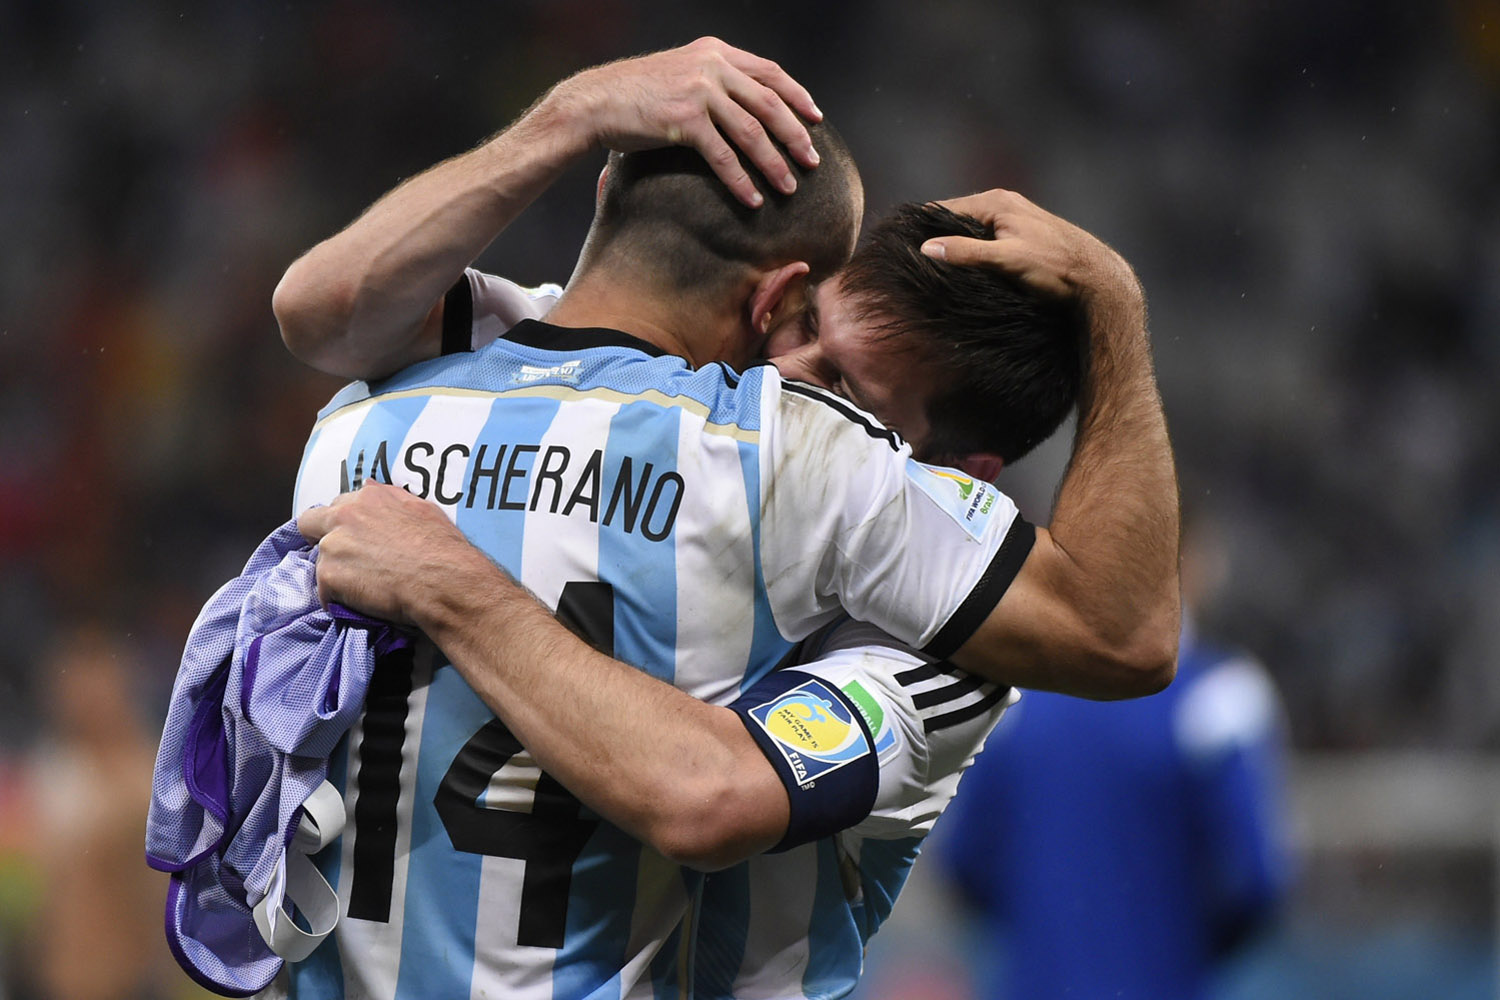 Argentina's midfielder Javier Mascherano (front) and Argentina's forward and captain Lionel Messi  celebrate after winning their FIFA World Cup semi-final match against the Netherlands in a penalty shoot-out following extra time at The Corinthians Arena in Sao Paulo on July 9, 2014.